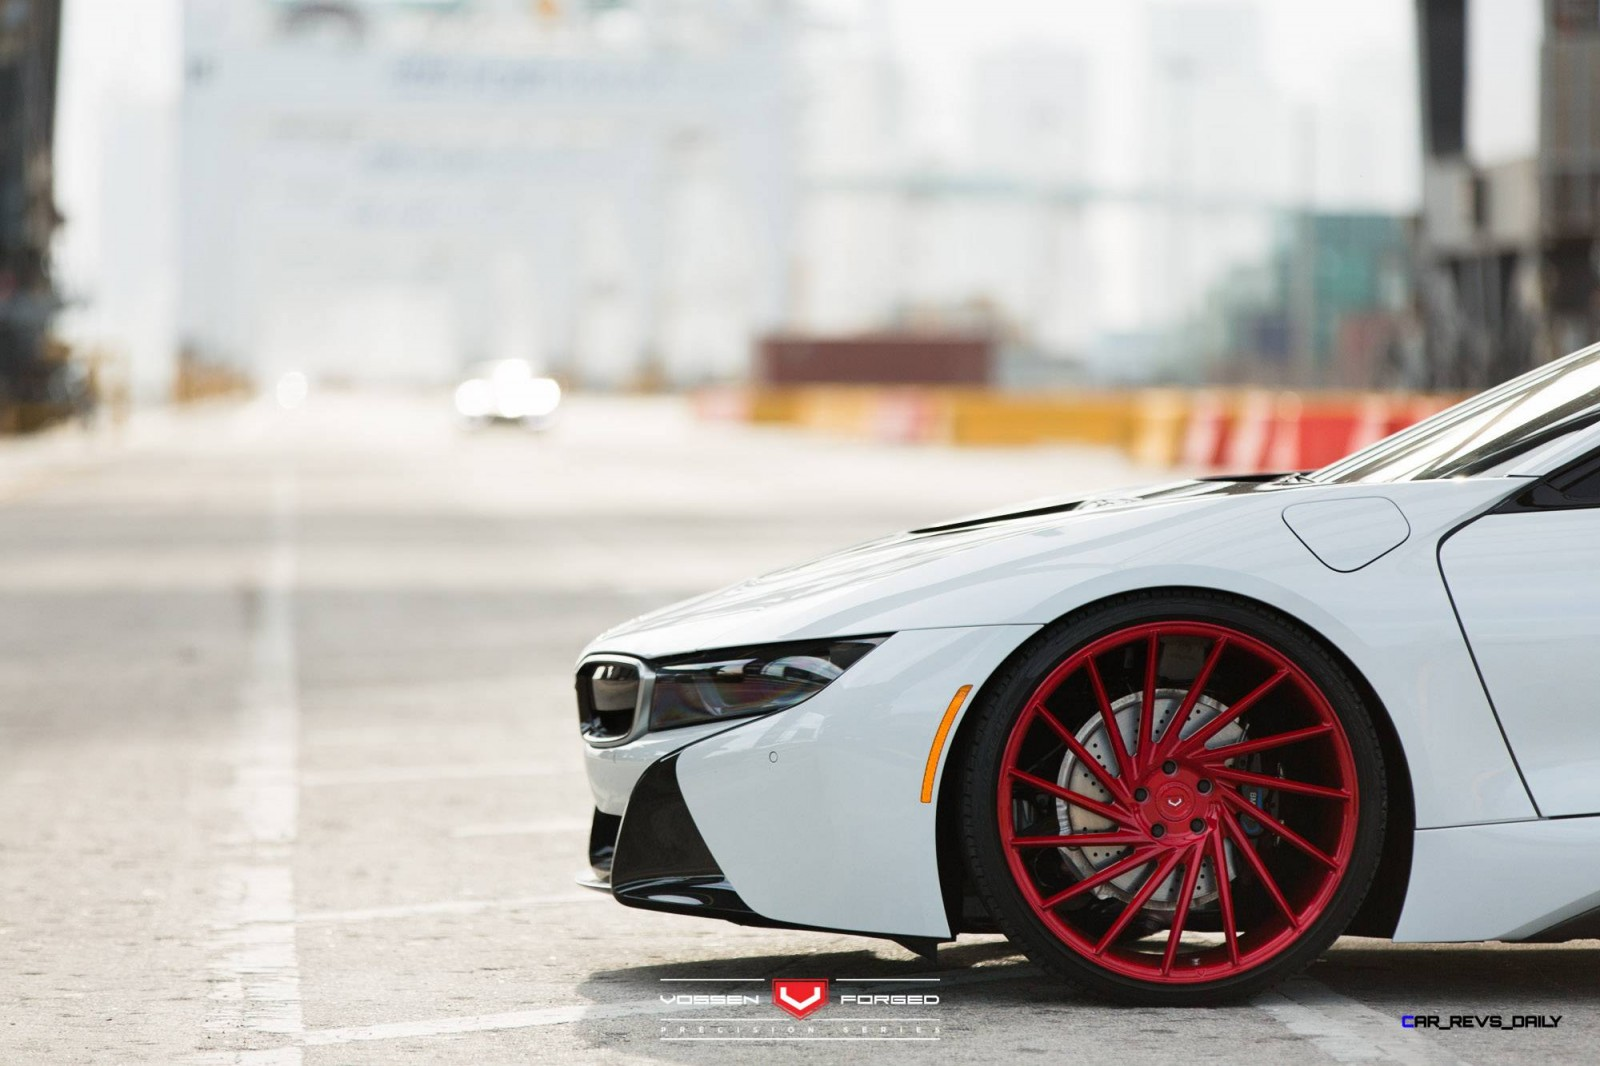 BMW i8 Duo - Vossen Forged Precision Series - ©_18050982988_o